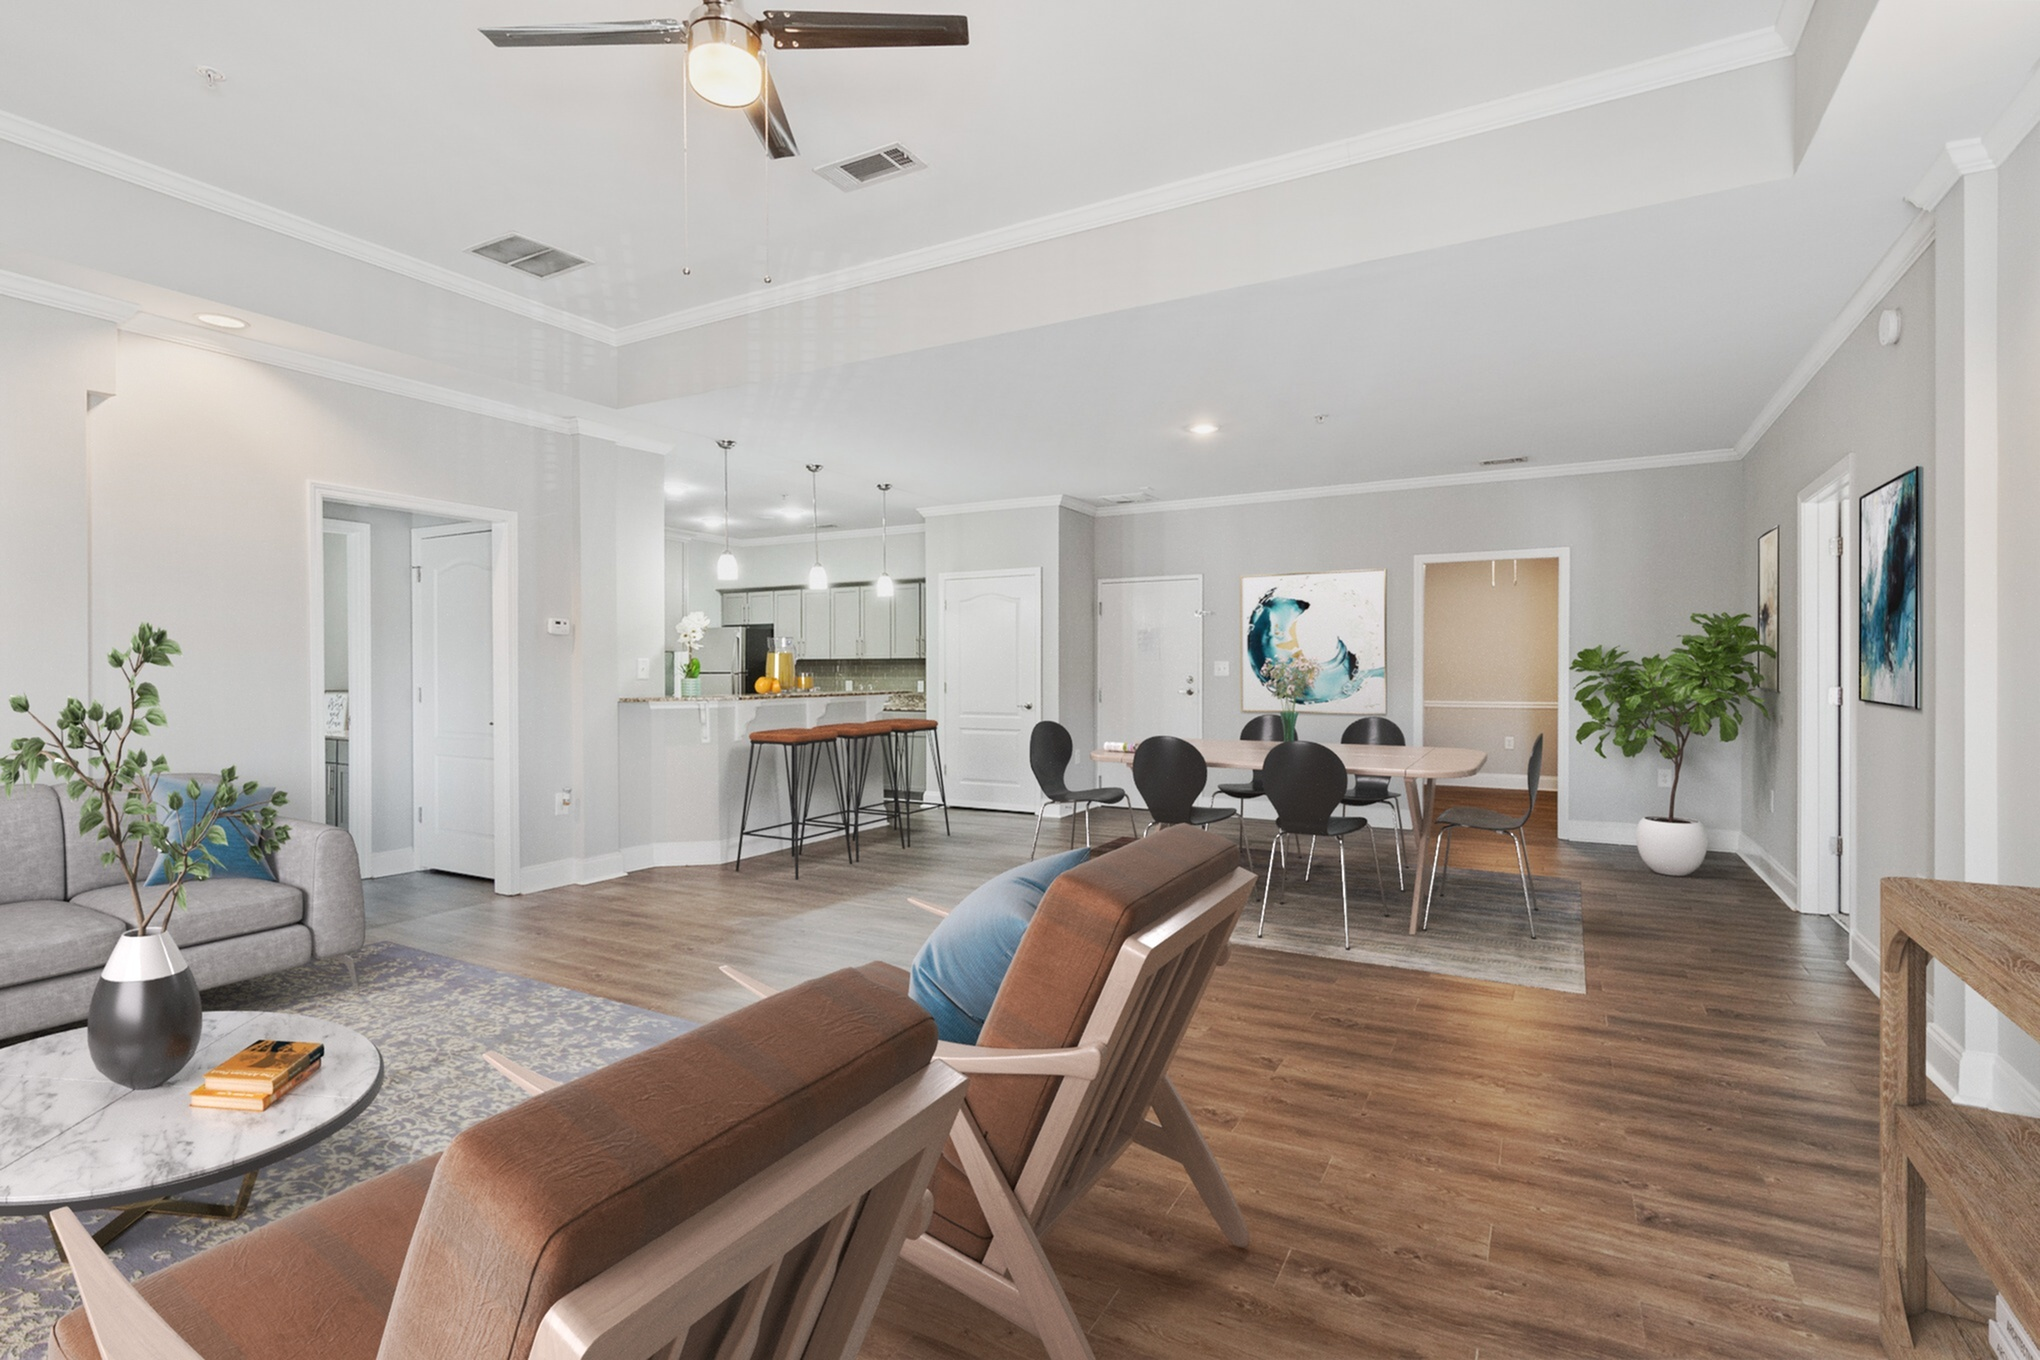 Living room with wood inspired plank flooring and large dining room area